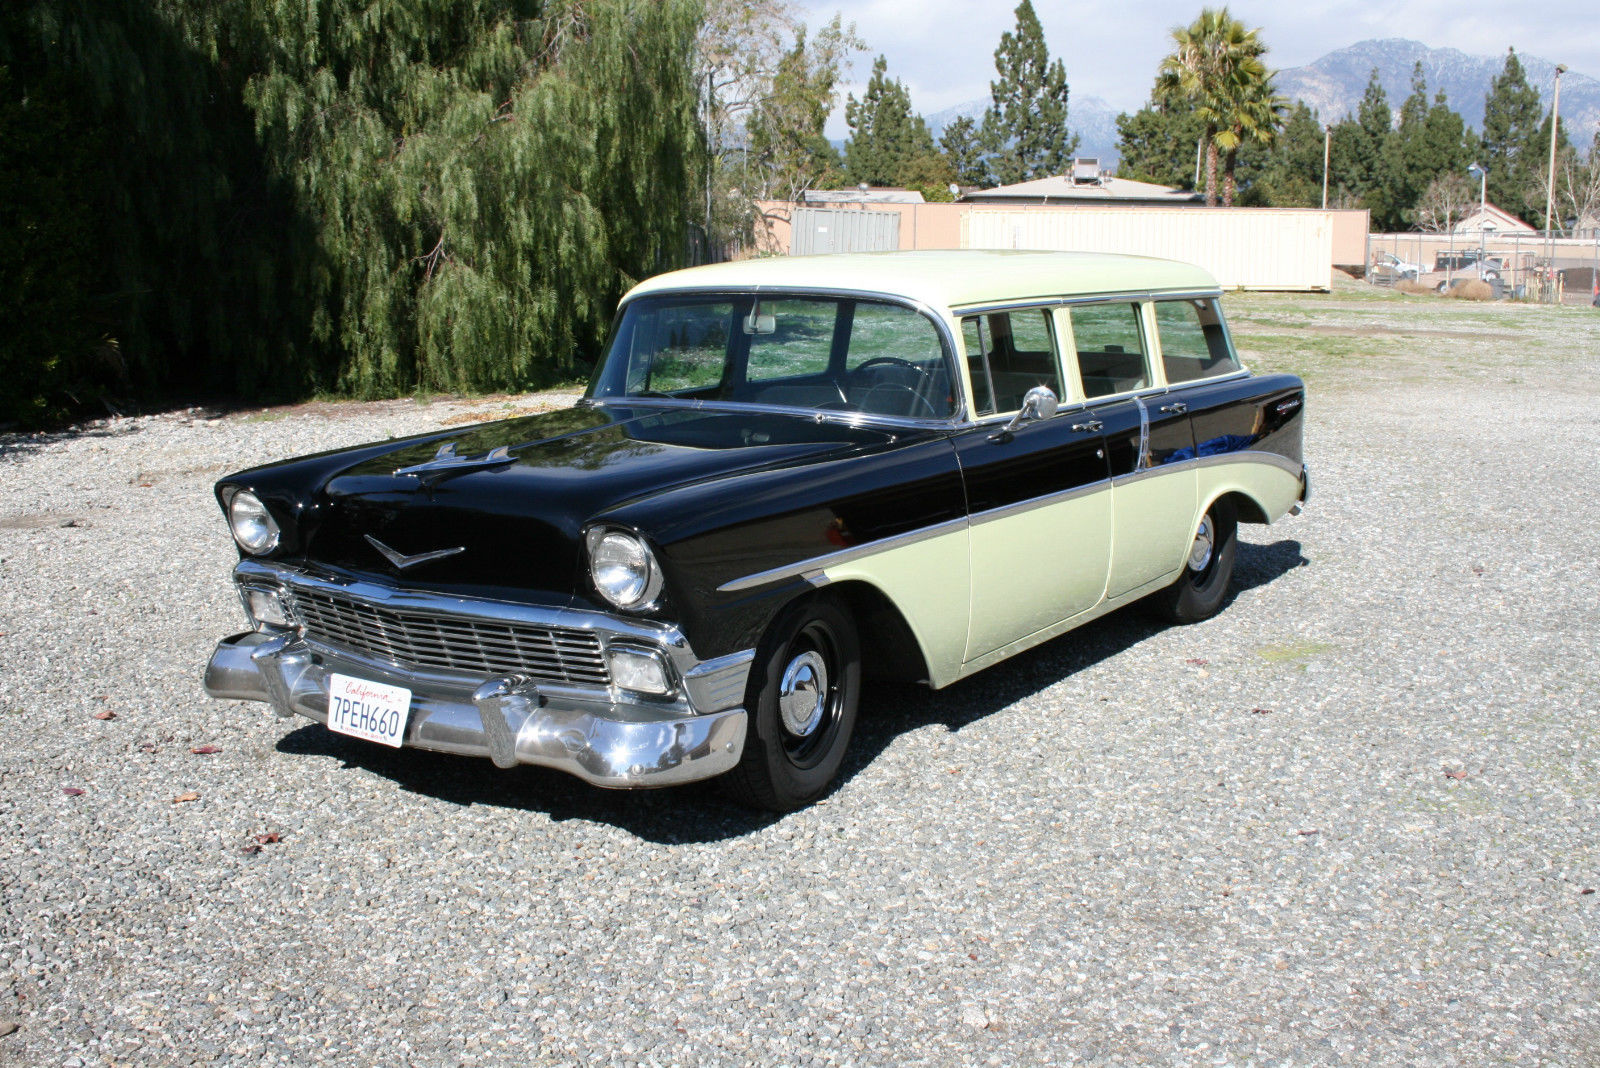 This 1956 Chevy Station Wagon Would Be The Perfect March Meet Cruiser Or Cackle Push Car!